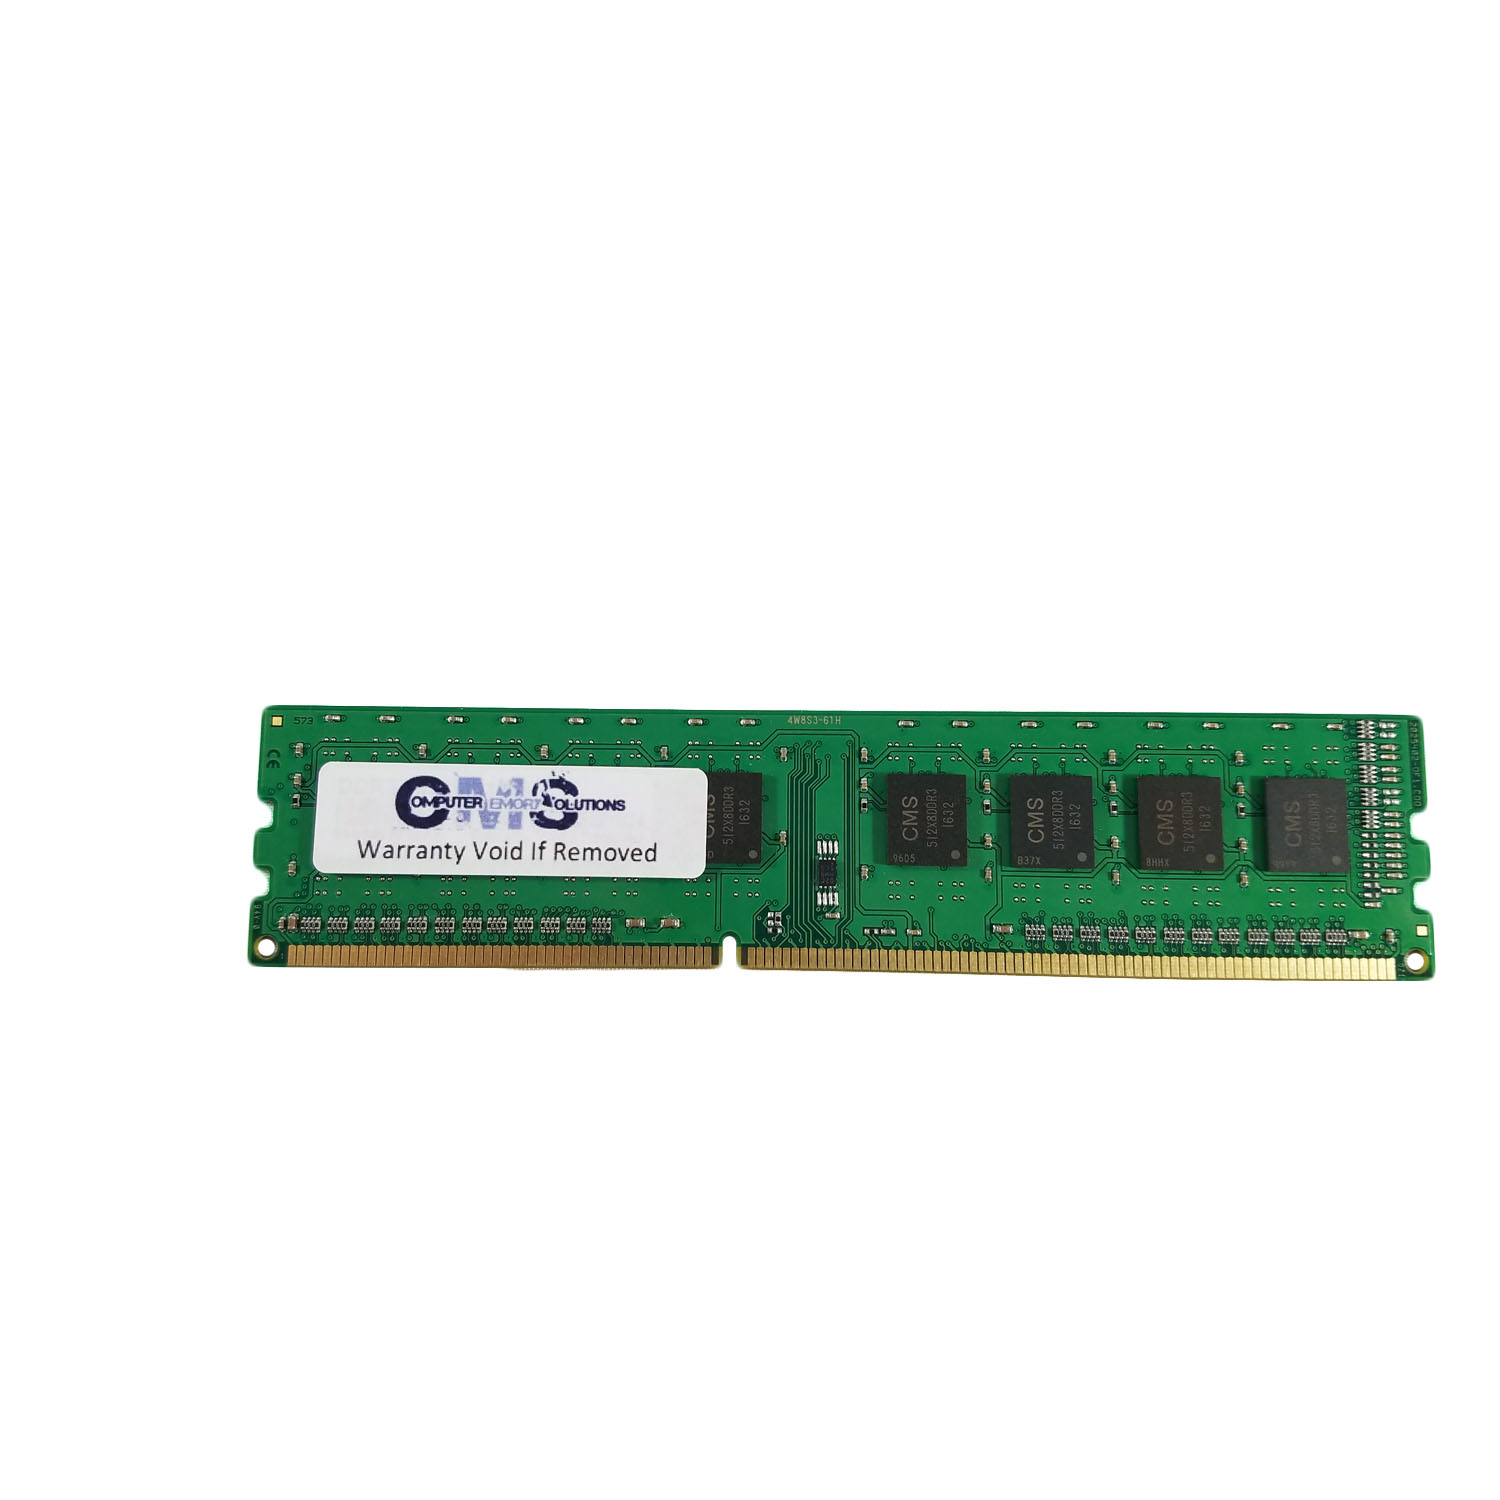 4Gb (1X4Gb) Memory Ram Compatible Hp/Compaq Business Desktop 6200 Pro (Sff/Mt) By CMS (A70)